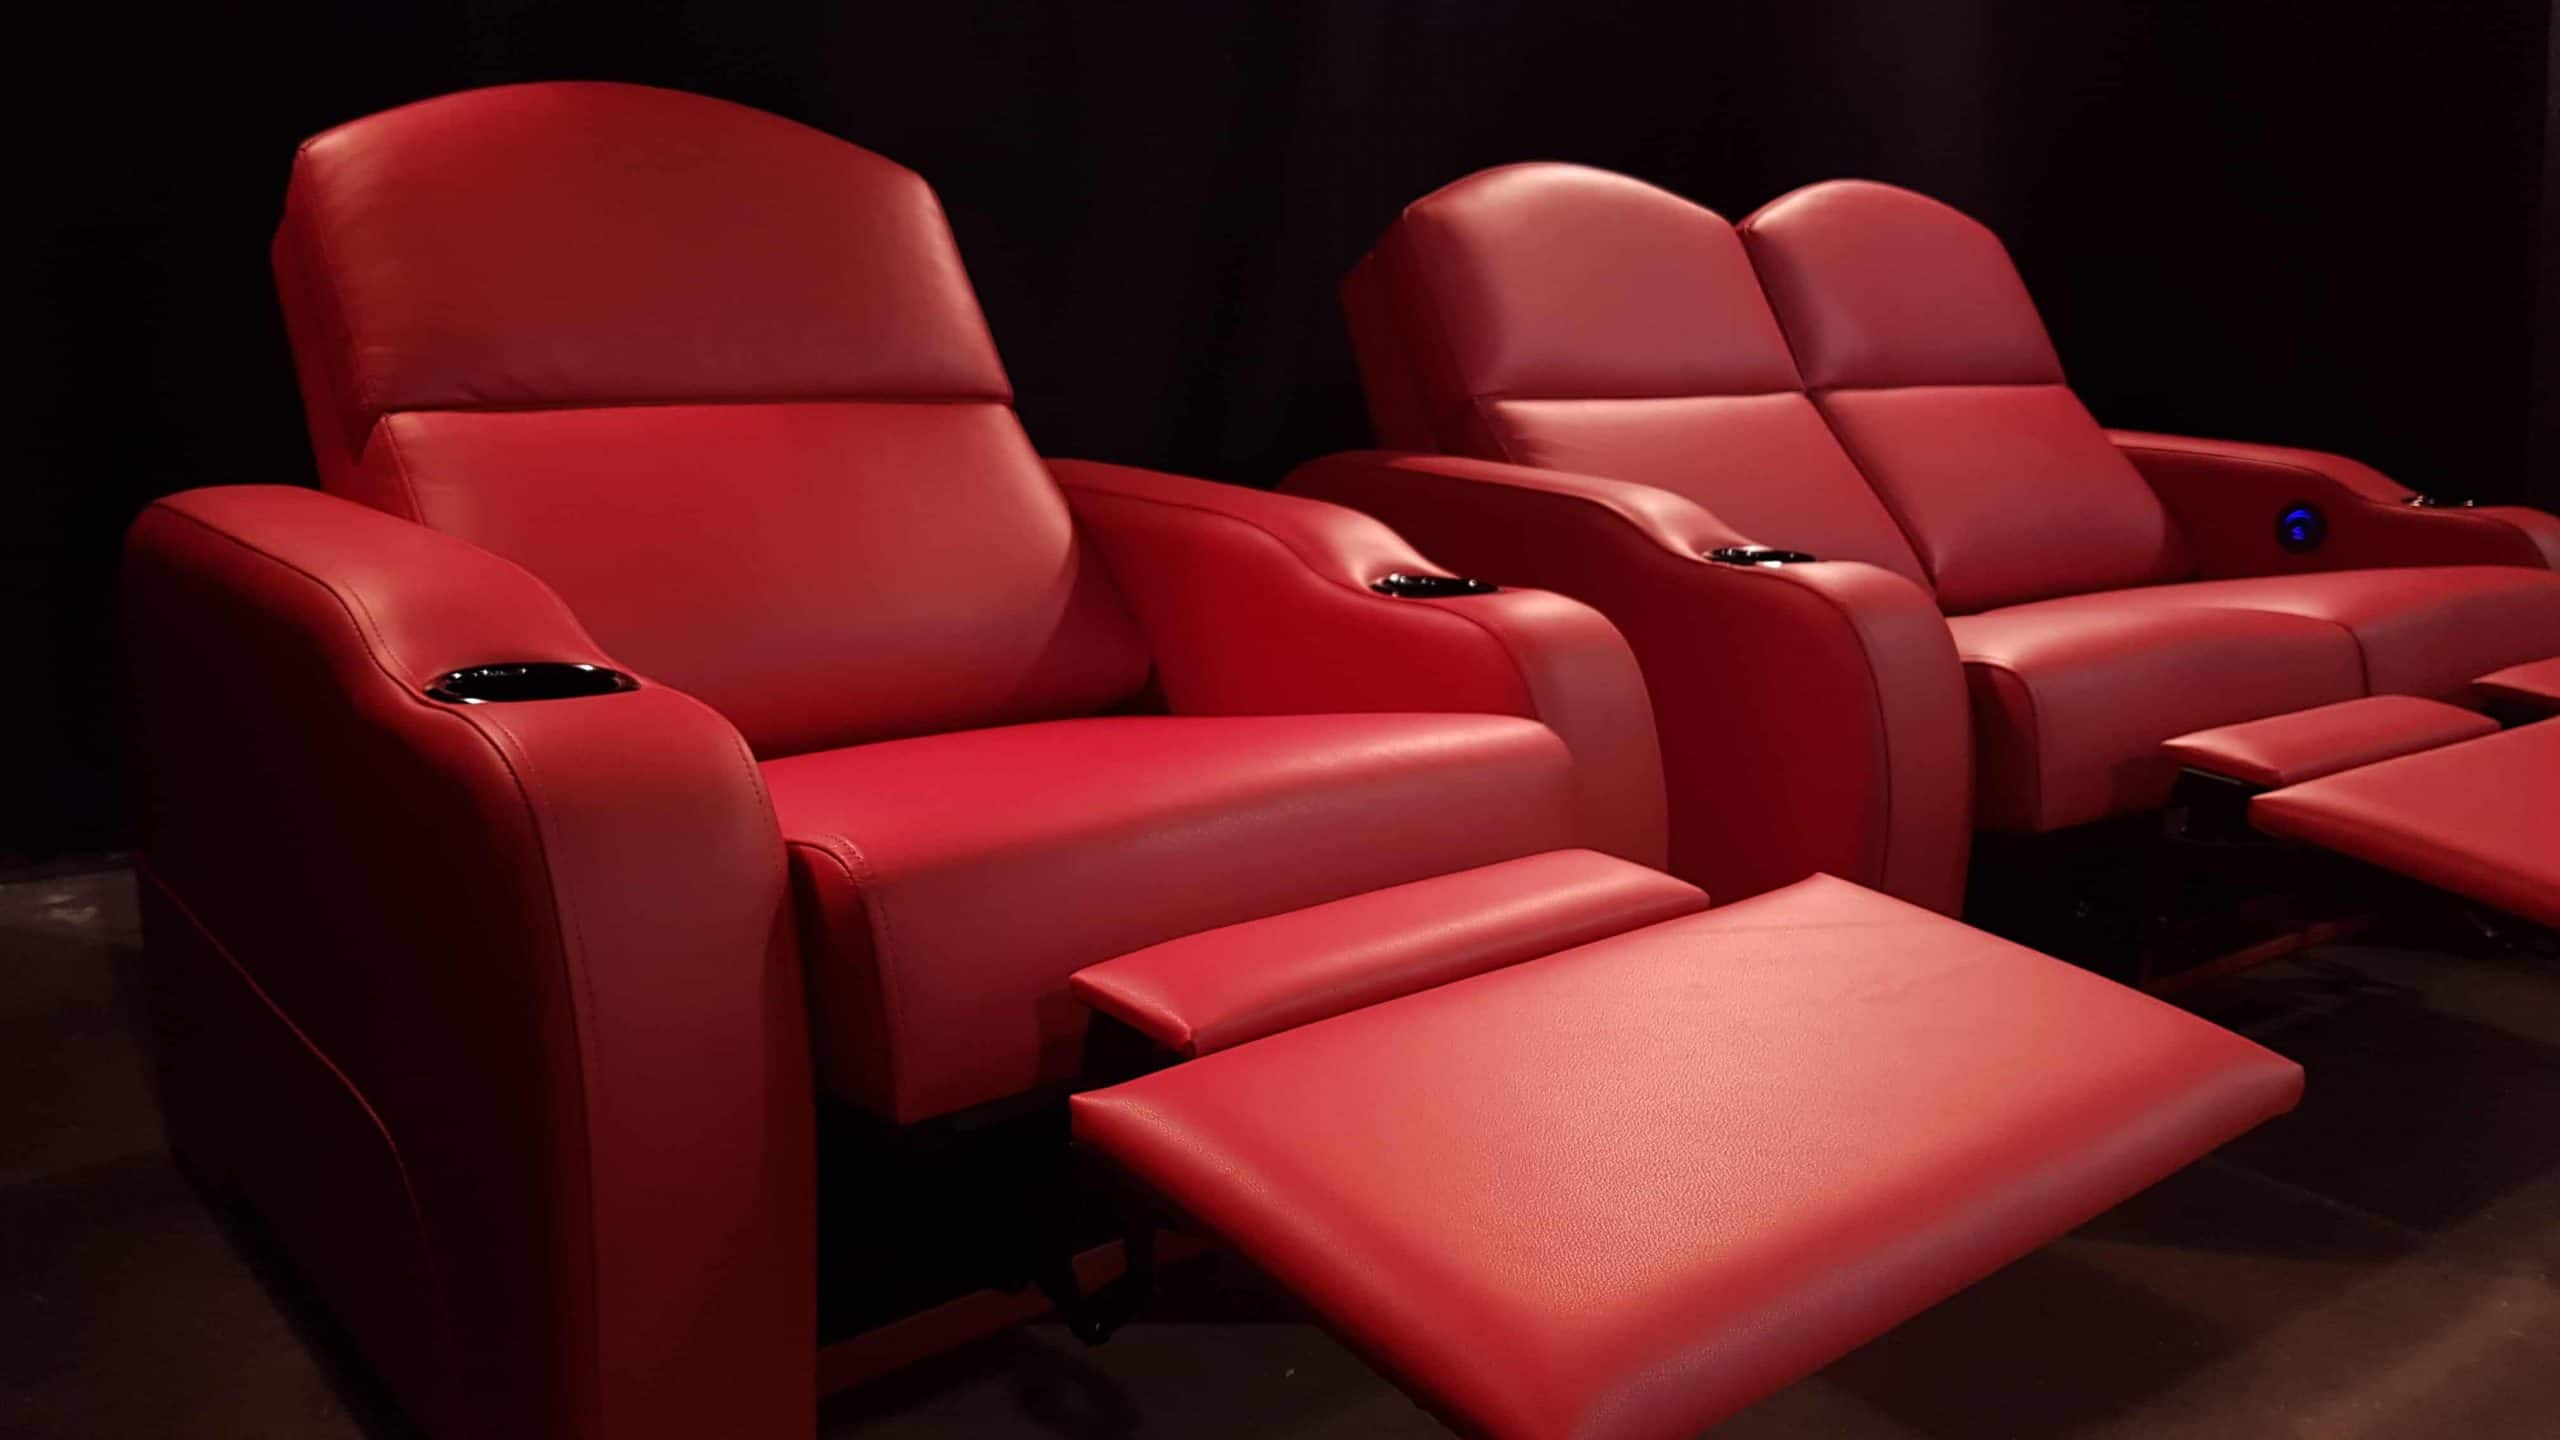 Red Theatre Chairs